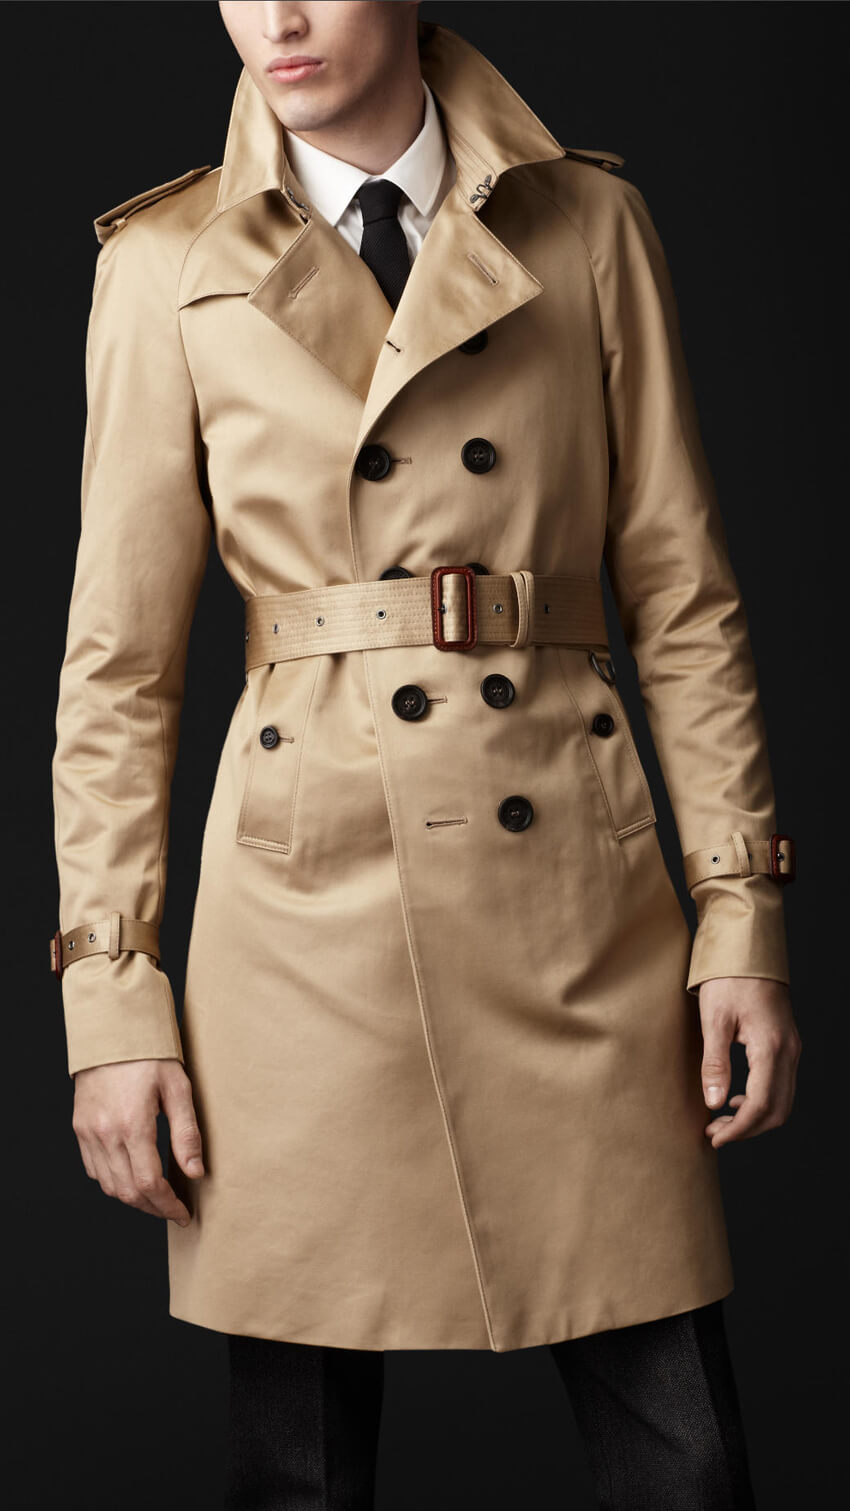 How to Use Trench Coat